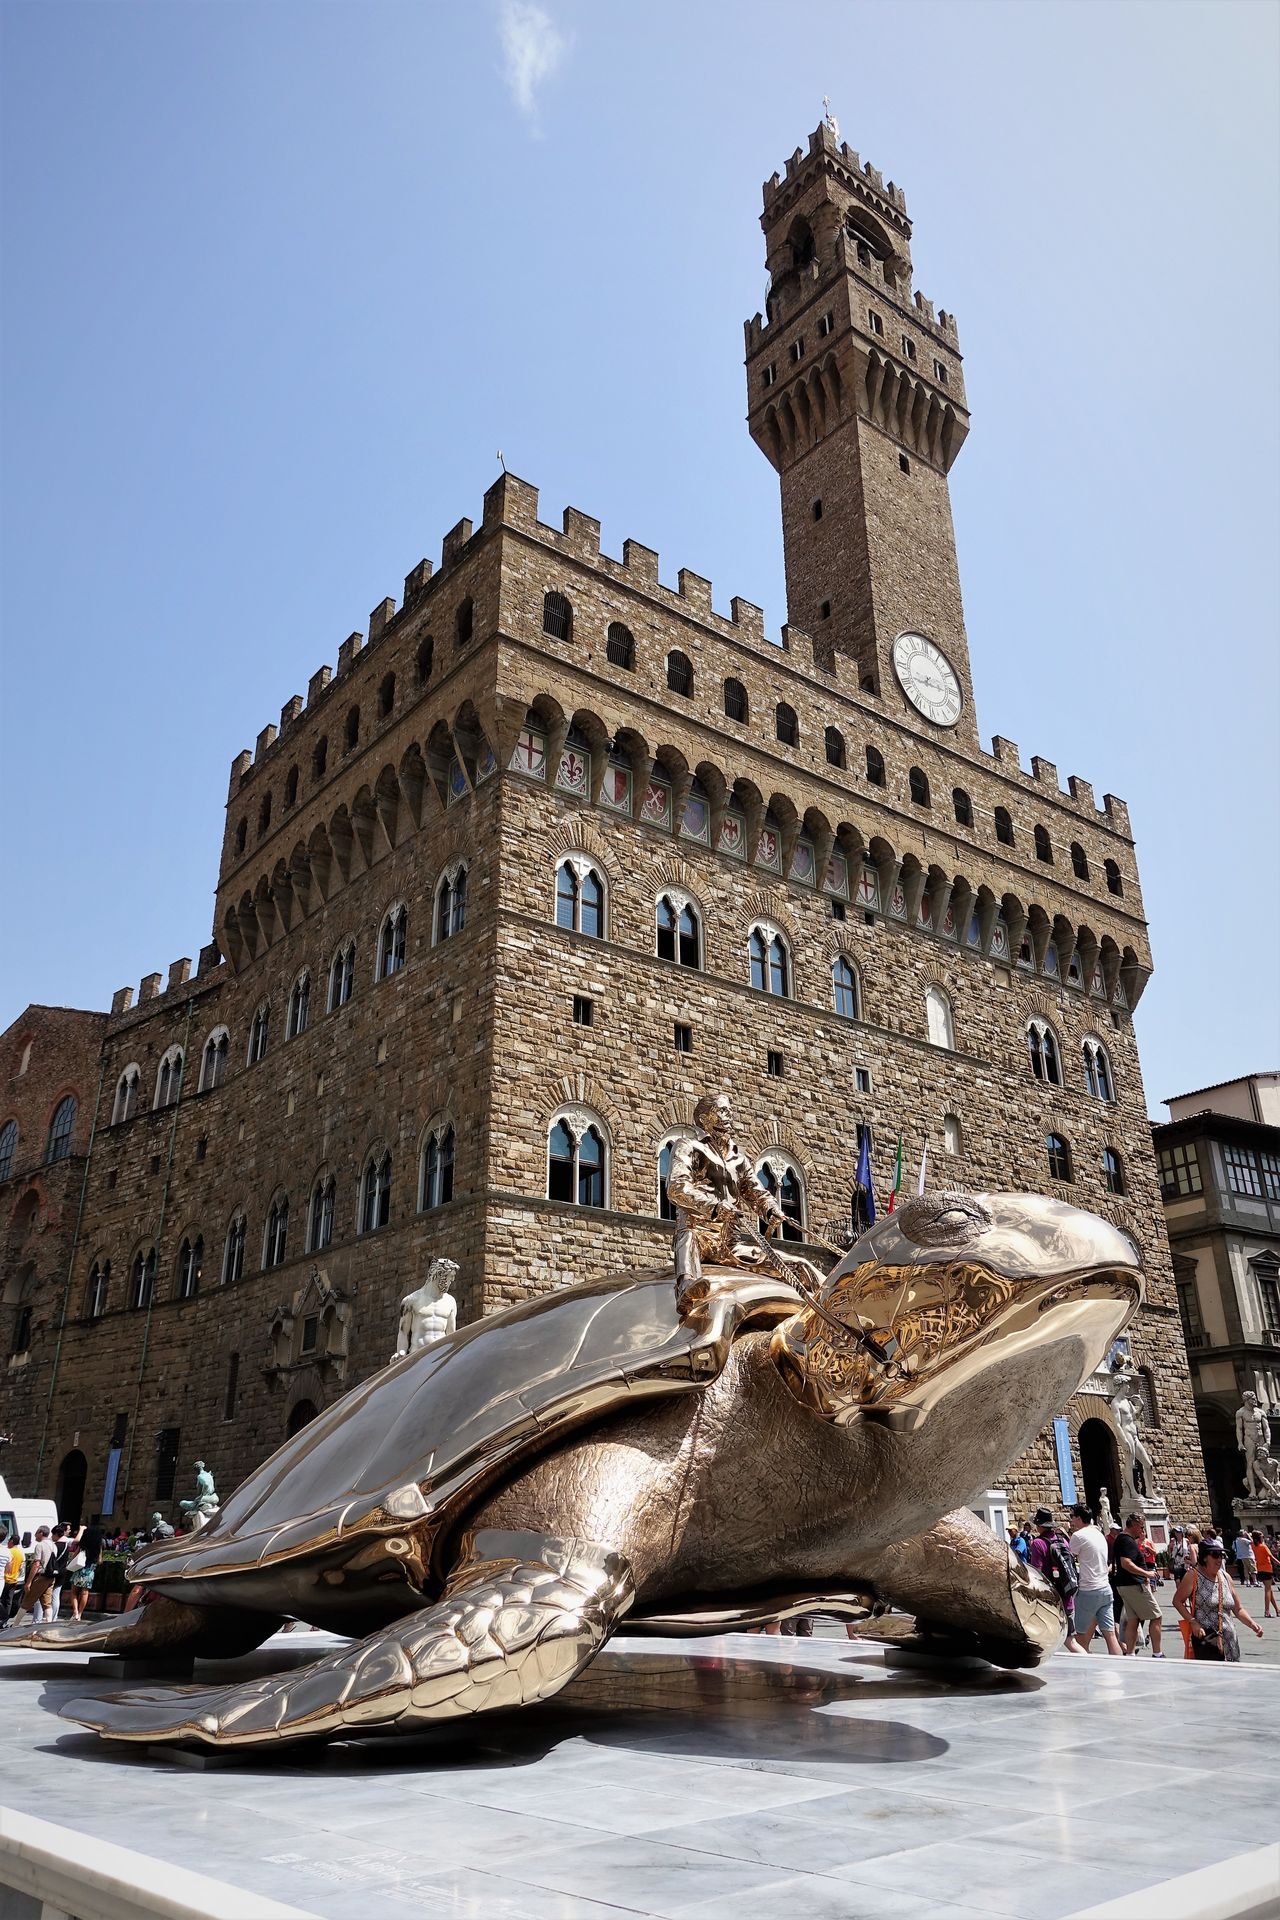 Palazzo Vecchio and Piazza della Signoria Architecture Building Exterior City Cityscape Day Golden Turtle History Jan Fabre Modern Art No People Outdoors Sculpture Searching Utopia Sky Statue Travel Destinations Water EyeEmNewHere